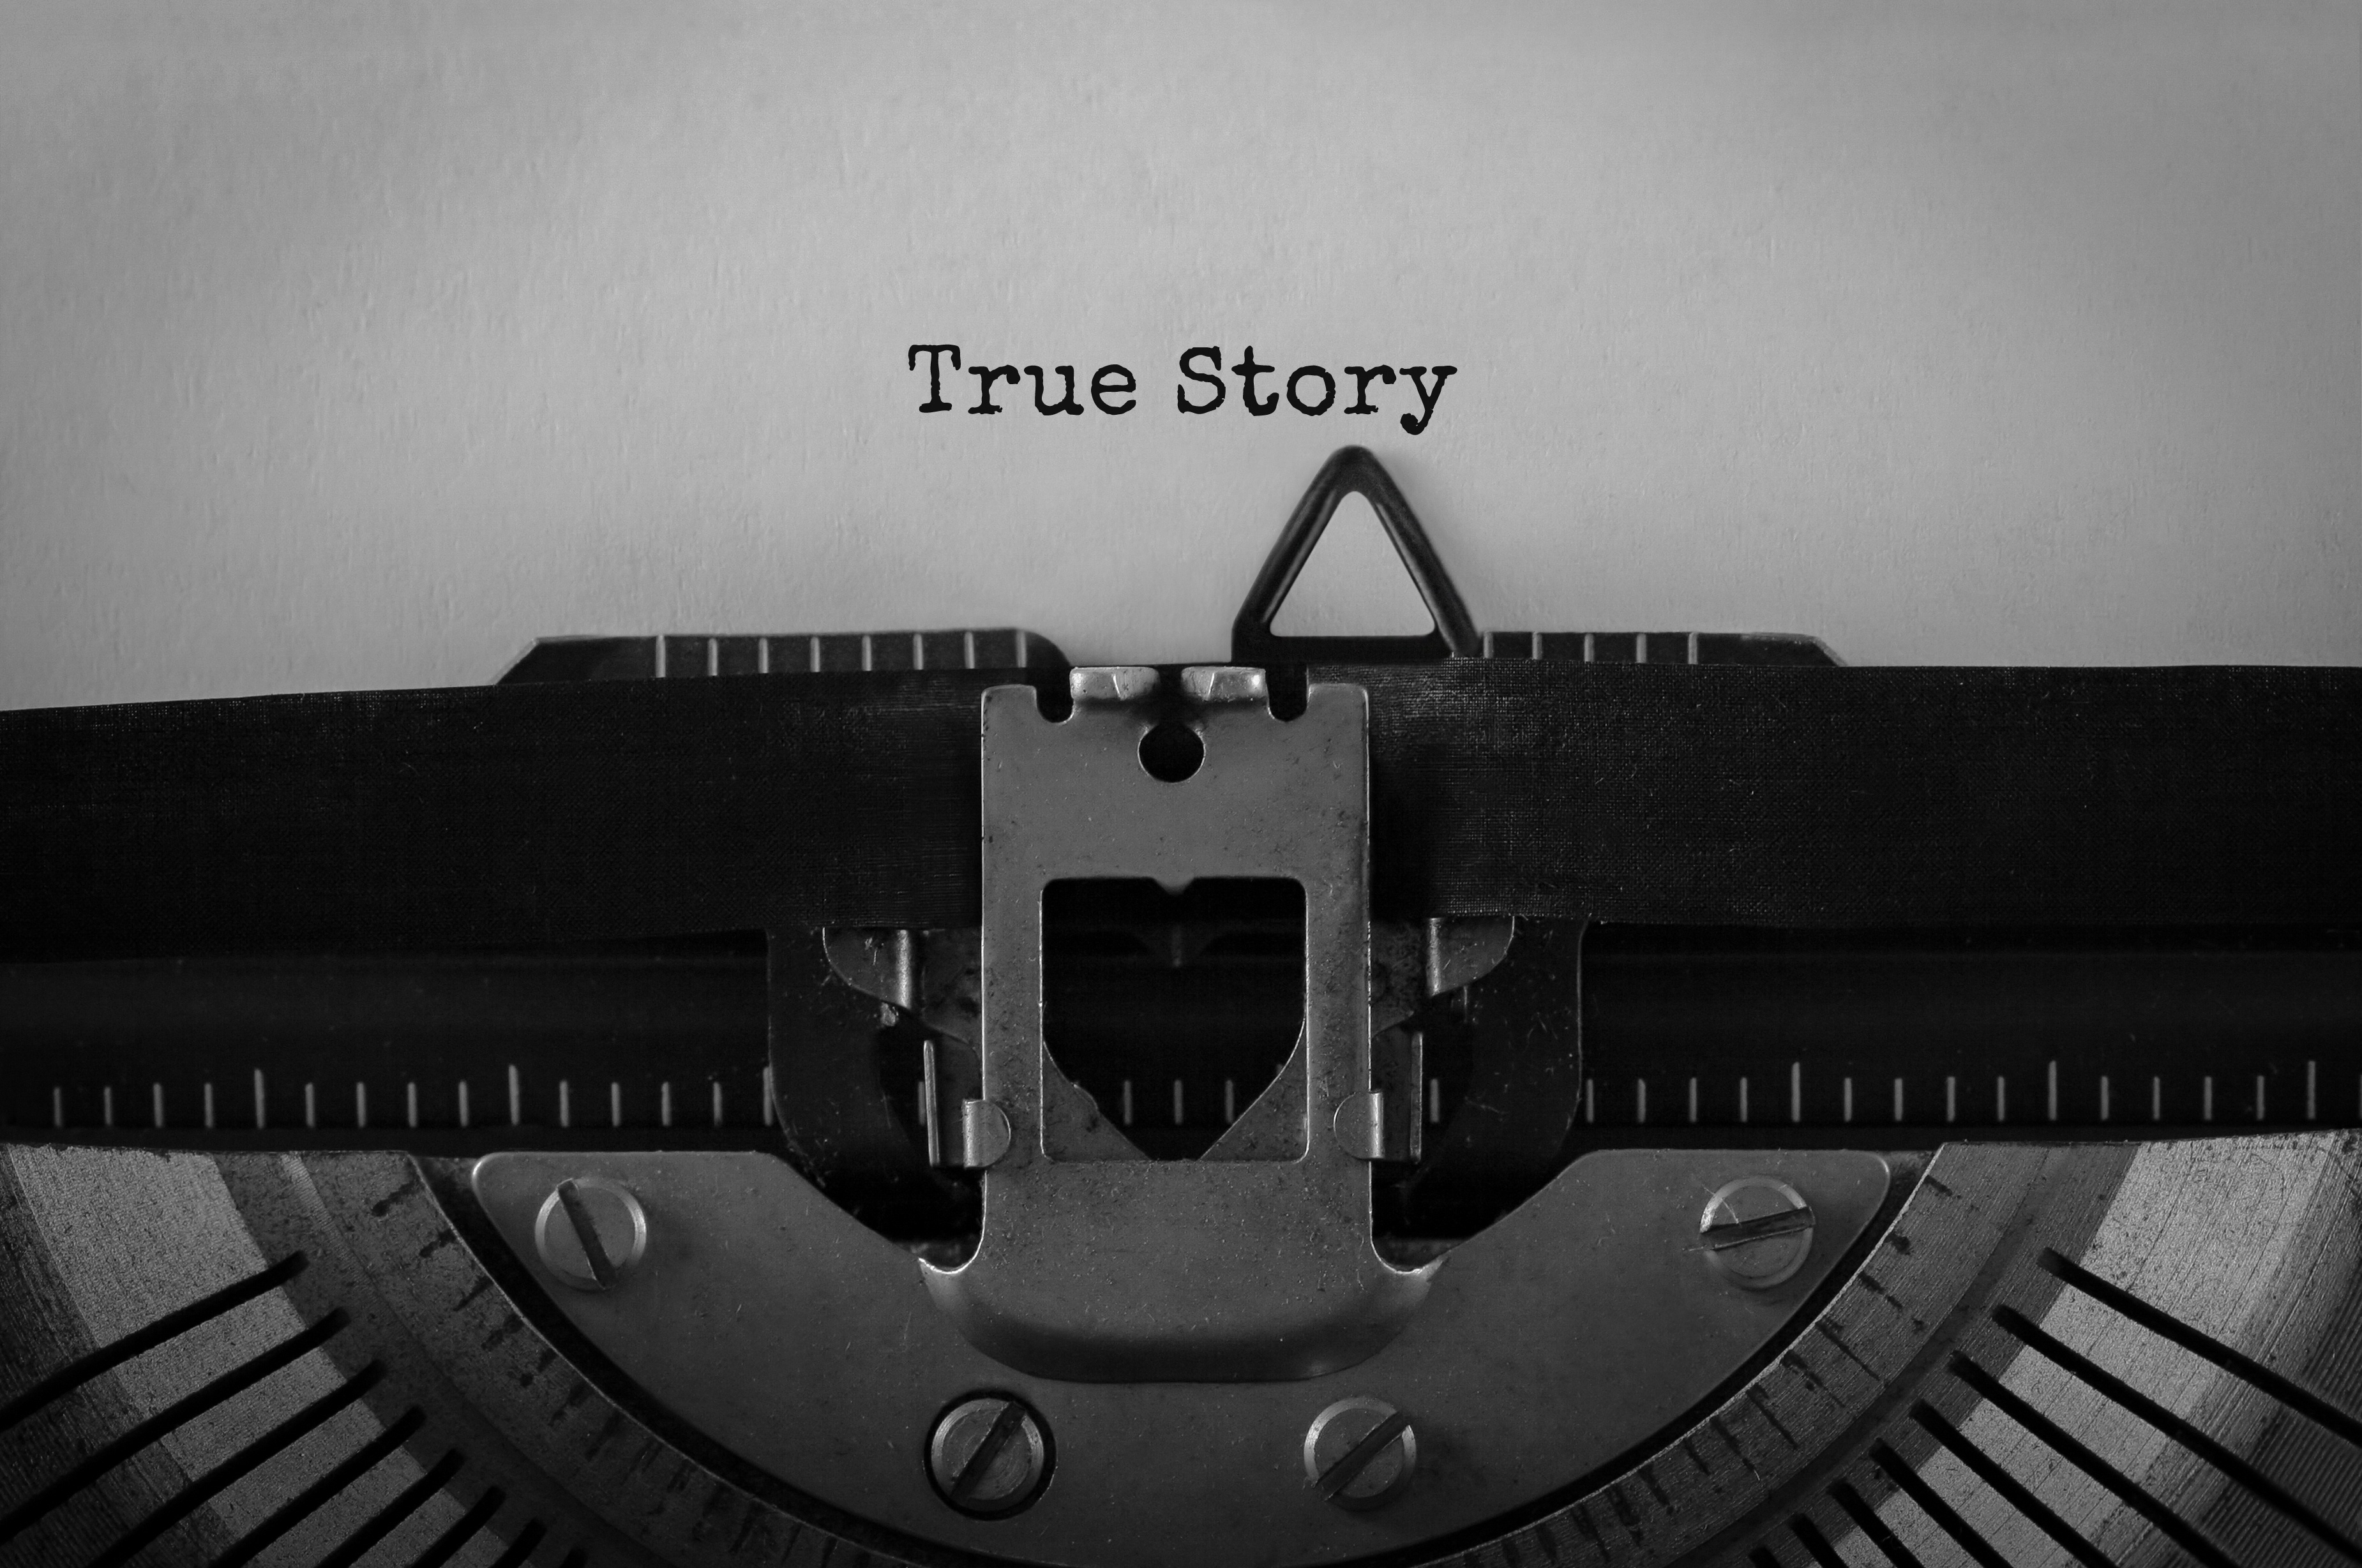 Typewriter. JConnelly blog- Honesty Needs to Be The Core of All You Do by Ray Hennessey